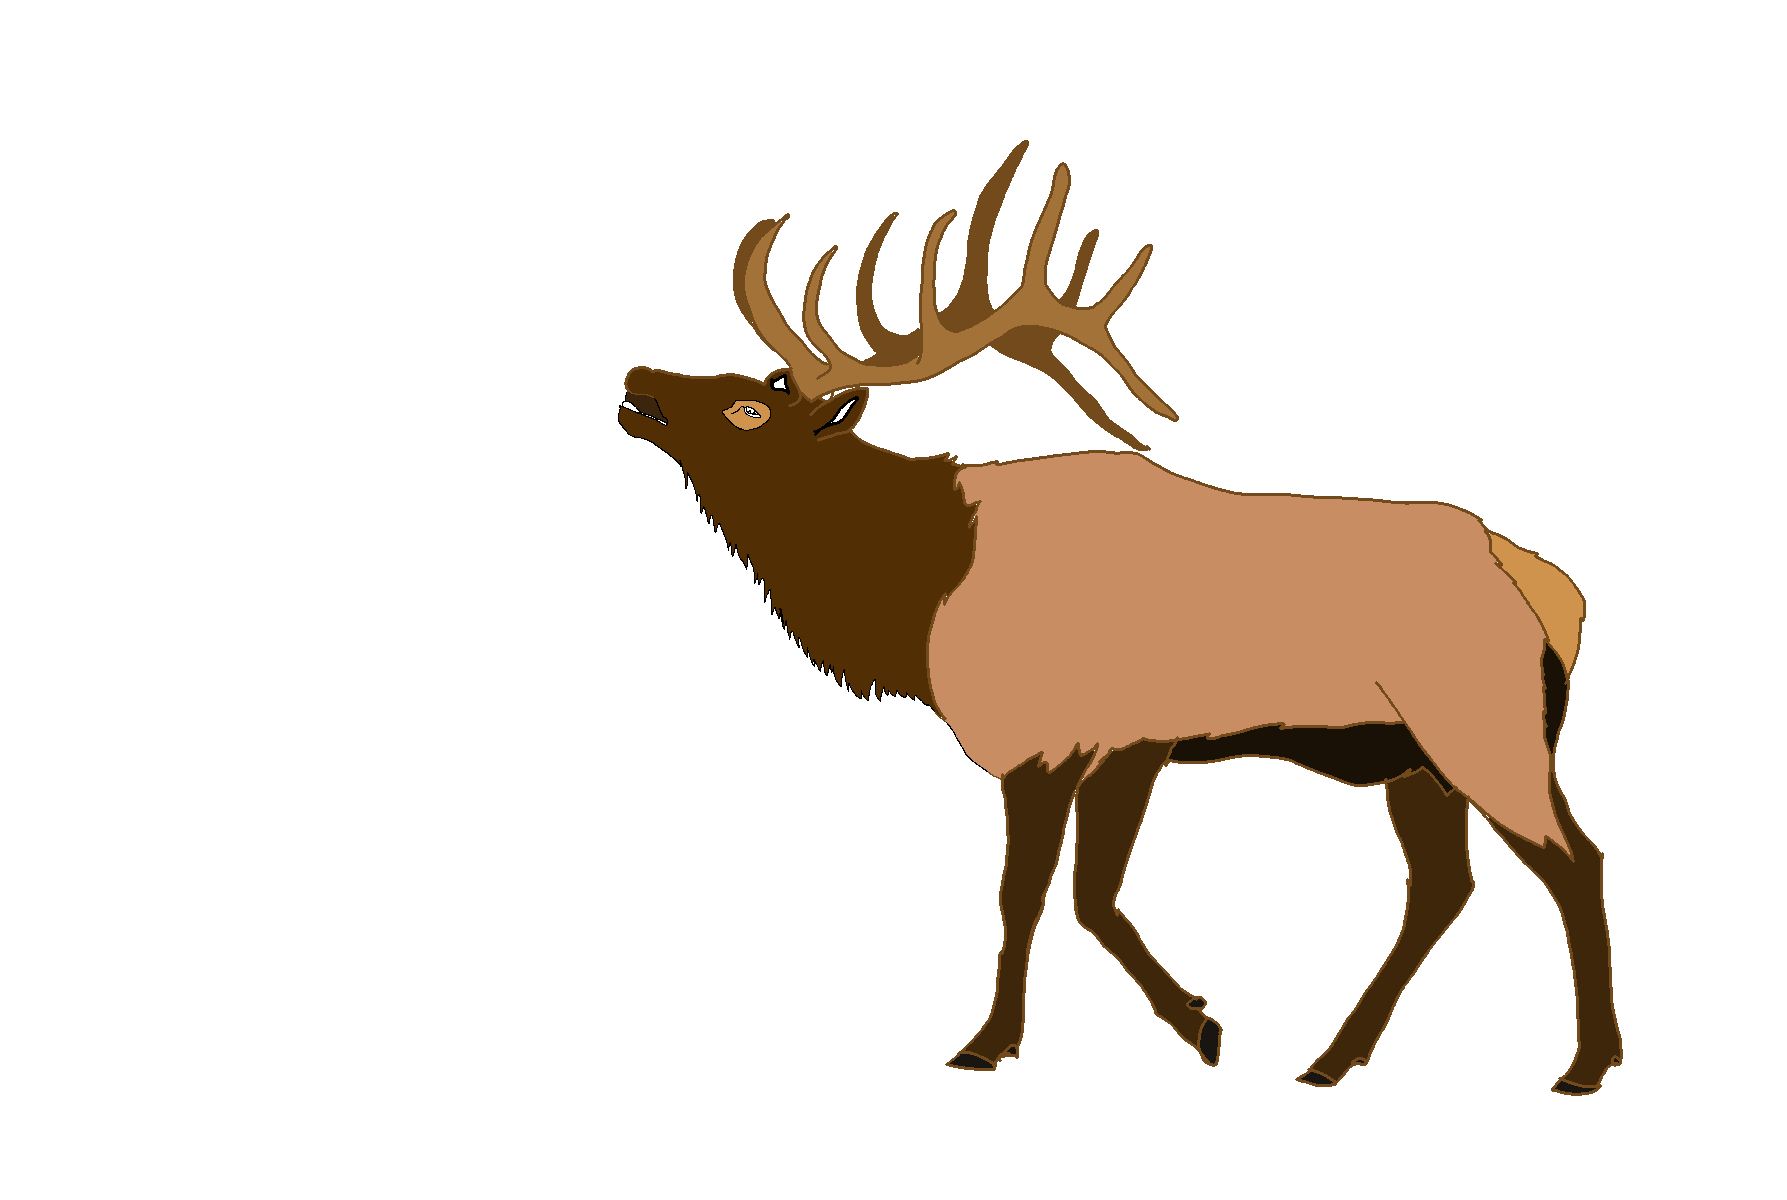 Elk clipart images vector library library Elk Deer Clip art - Cl Cliparts png download - 1787*1200 - Free ... vector library library